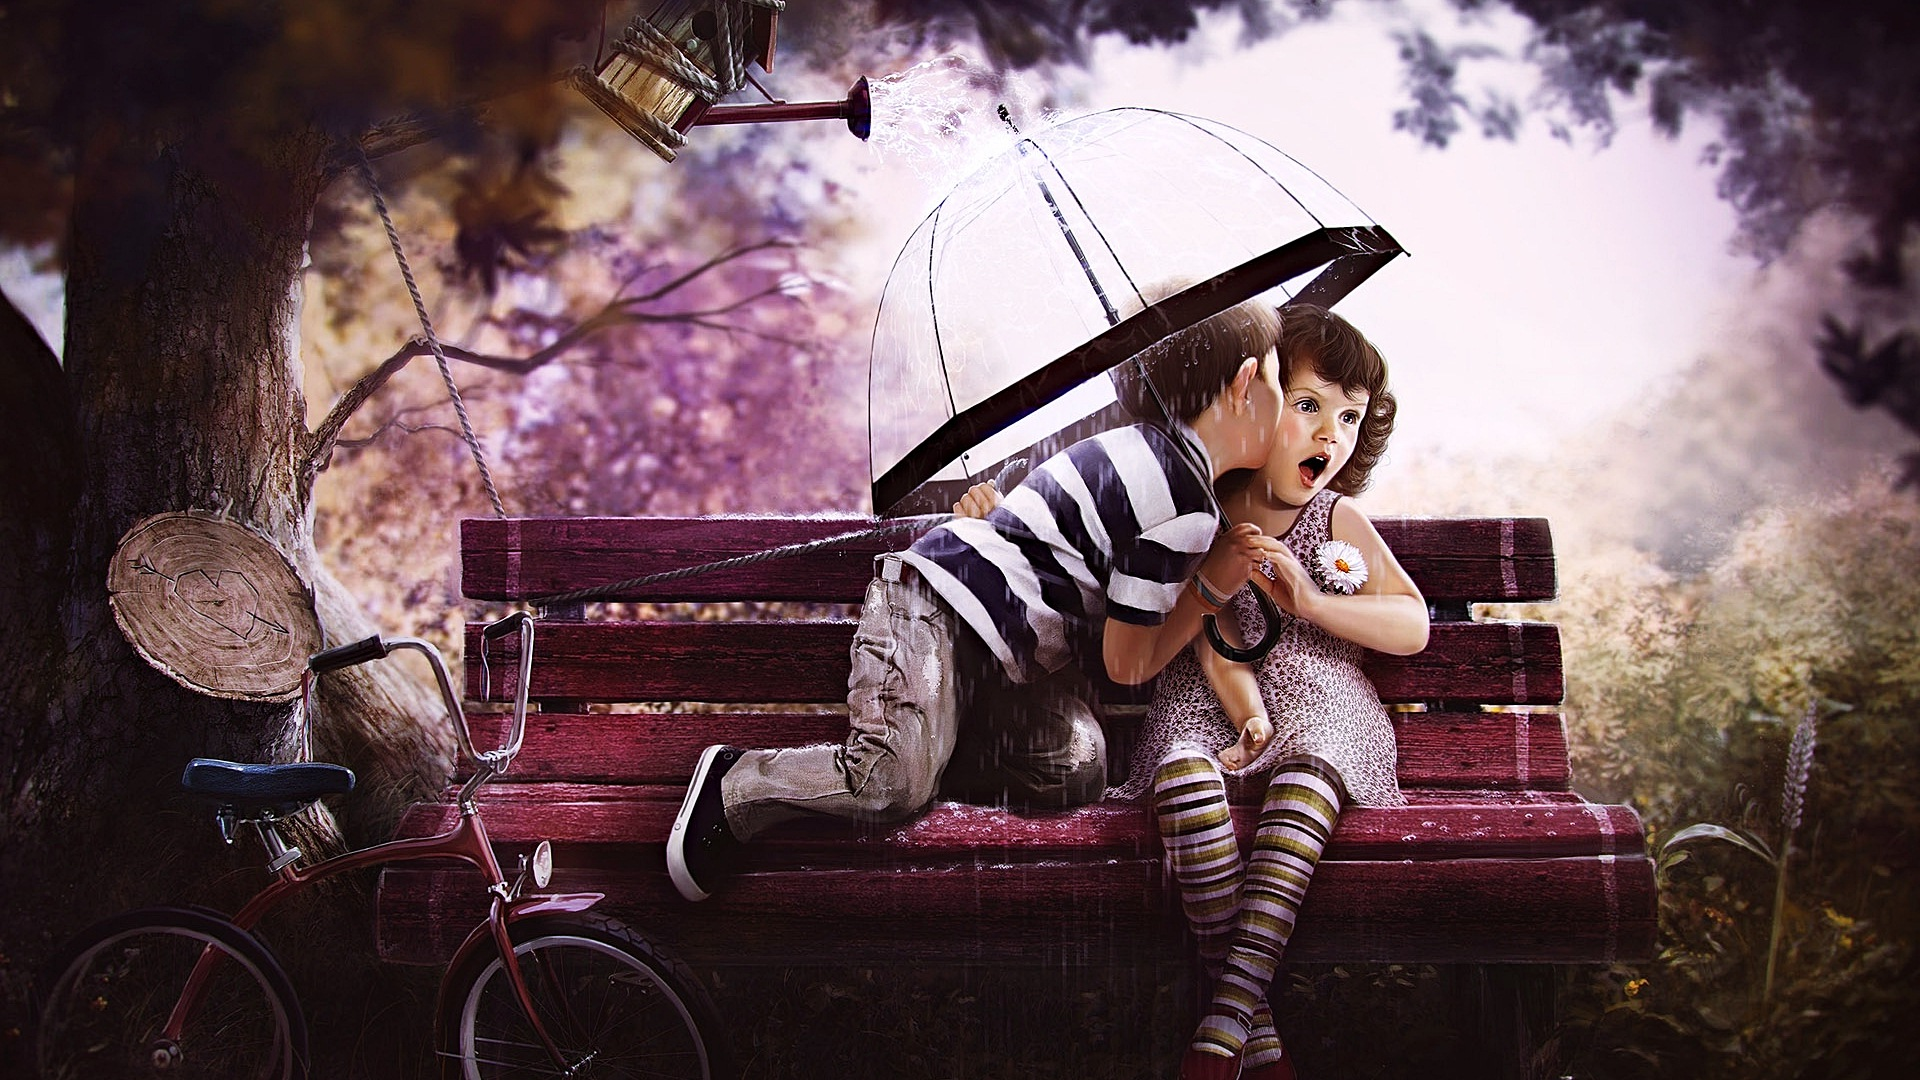 Love couple Wallpaper In 3d : 40 children Love couple HD Wallpaper,Images,Pictures,Photos,HD Wallpapers 1455 :: children Love ...